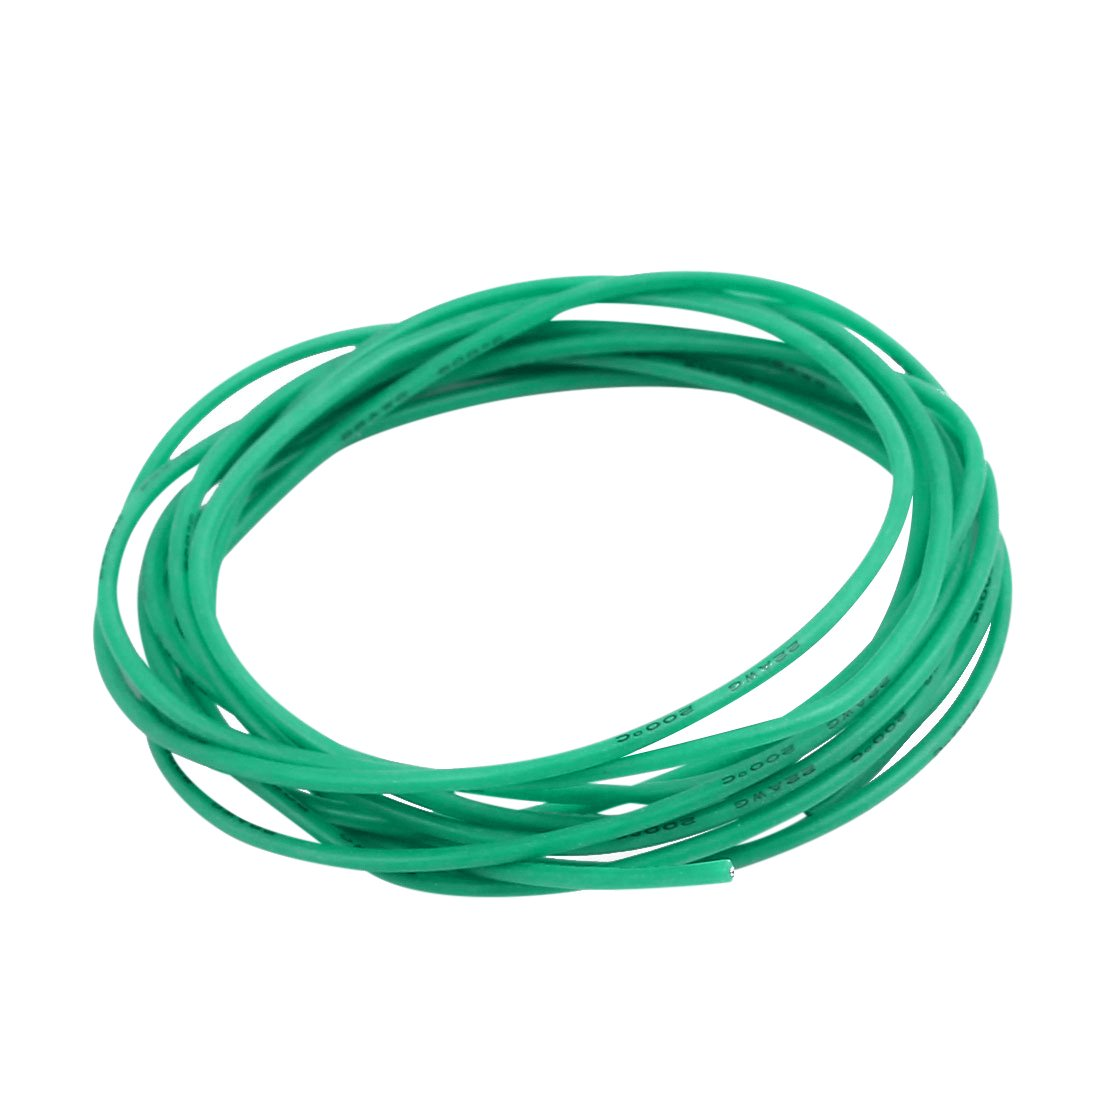 uxcell 22 AWG Silicone Wire 22 Gauge Electric Wire Hook up Wire Cable 6.5 Feet Soft and Flexible 60 Strands 0.08mm of Tinned Copper Wire High Temperature Resistance Green